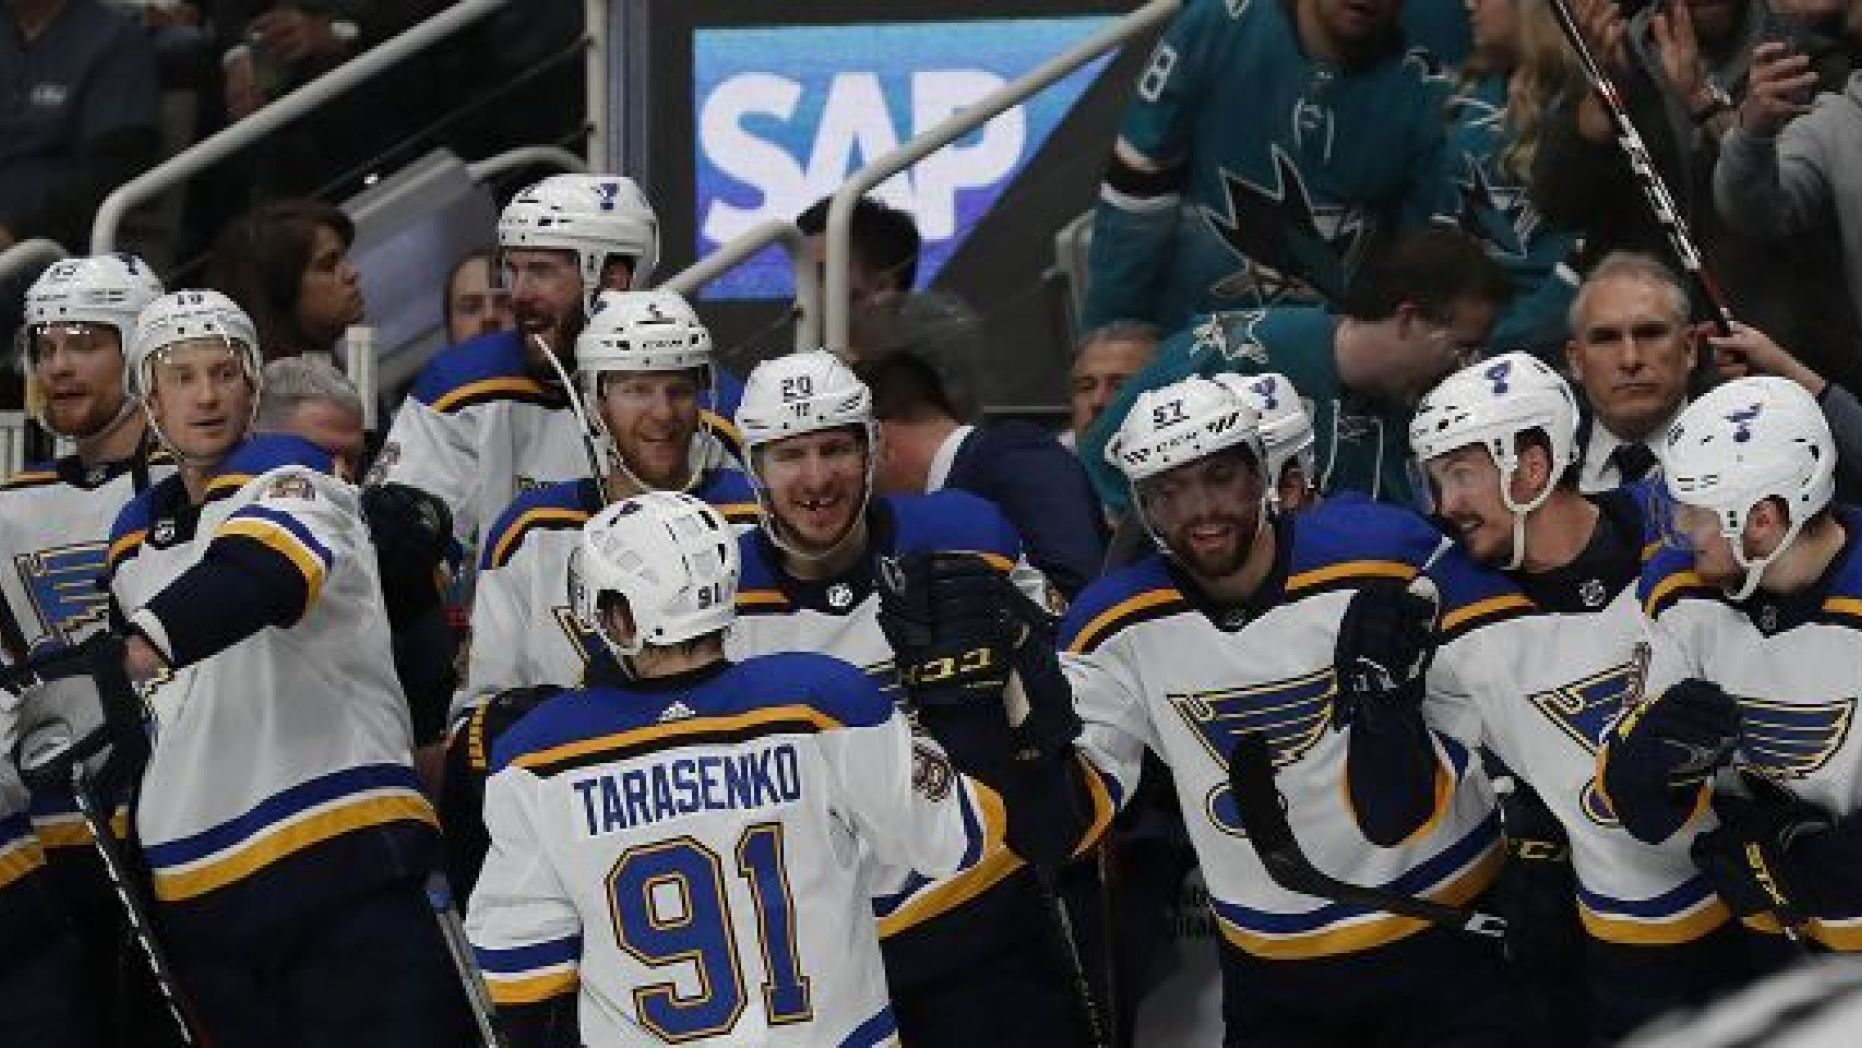 Blues Sharks Game 5